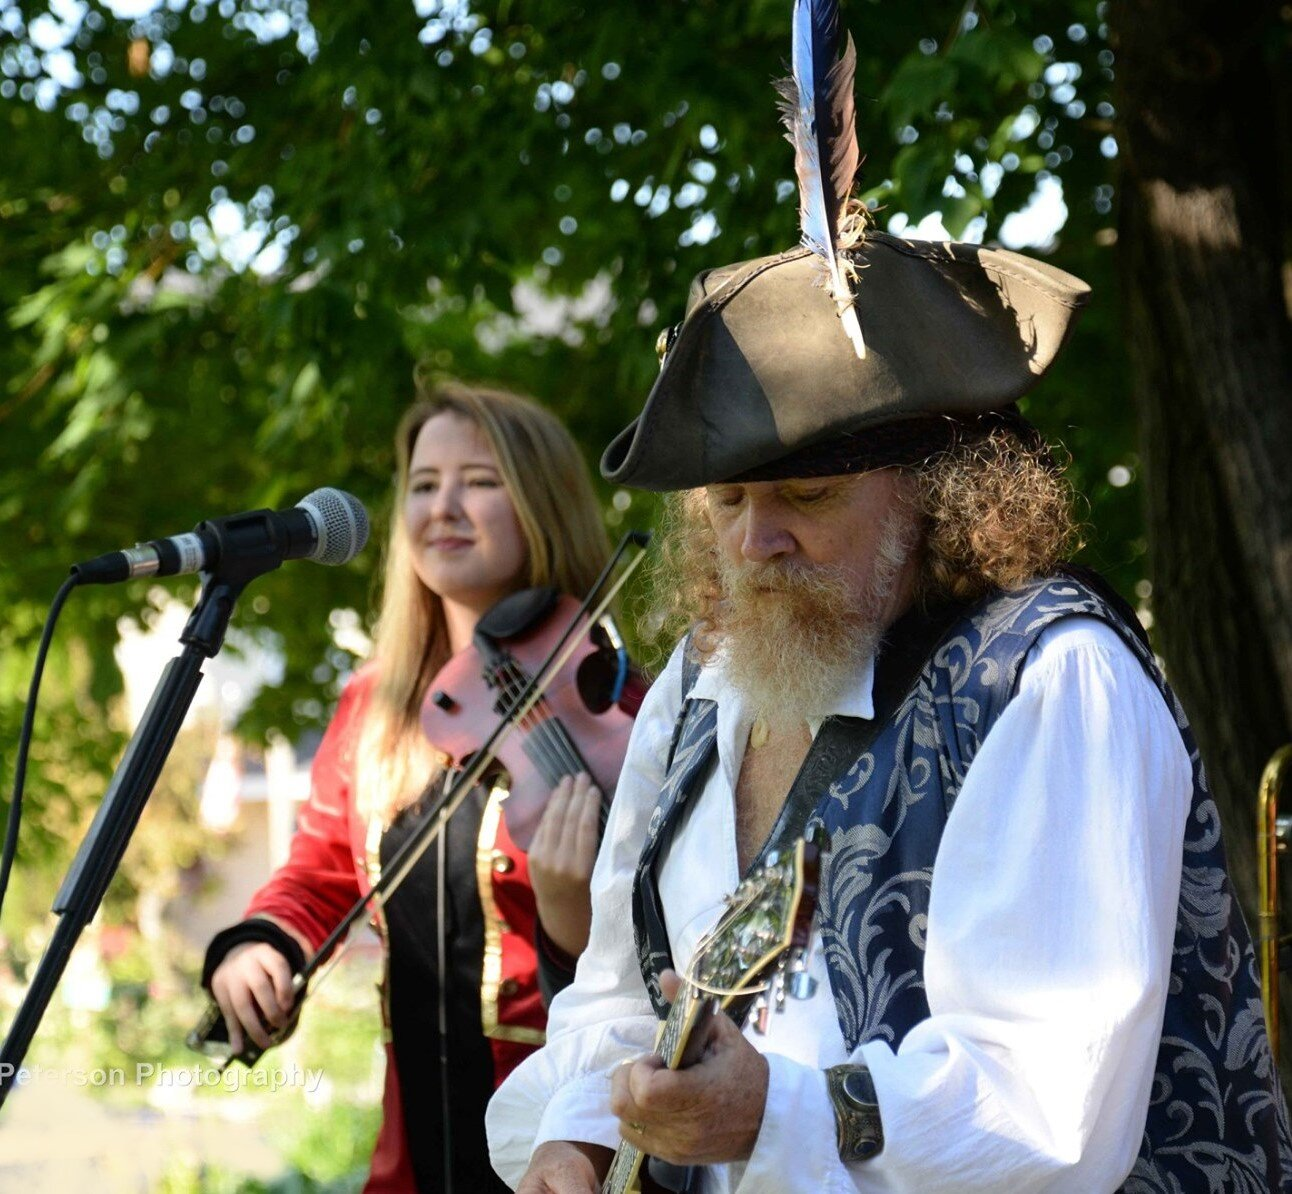 On tour for several weeks in the Great Lakes area with Tom Mason and the Blue Buccaneers. I've always wanted to be a pirate. So I got to be a singing, fiddle playing pirate at music festivals, yacht clubs, venues, and street dances all over Michigan, Wisconsin, and Minnesota.